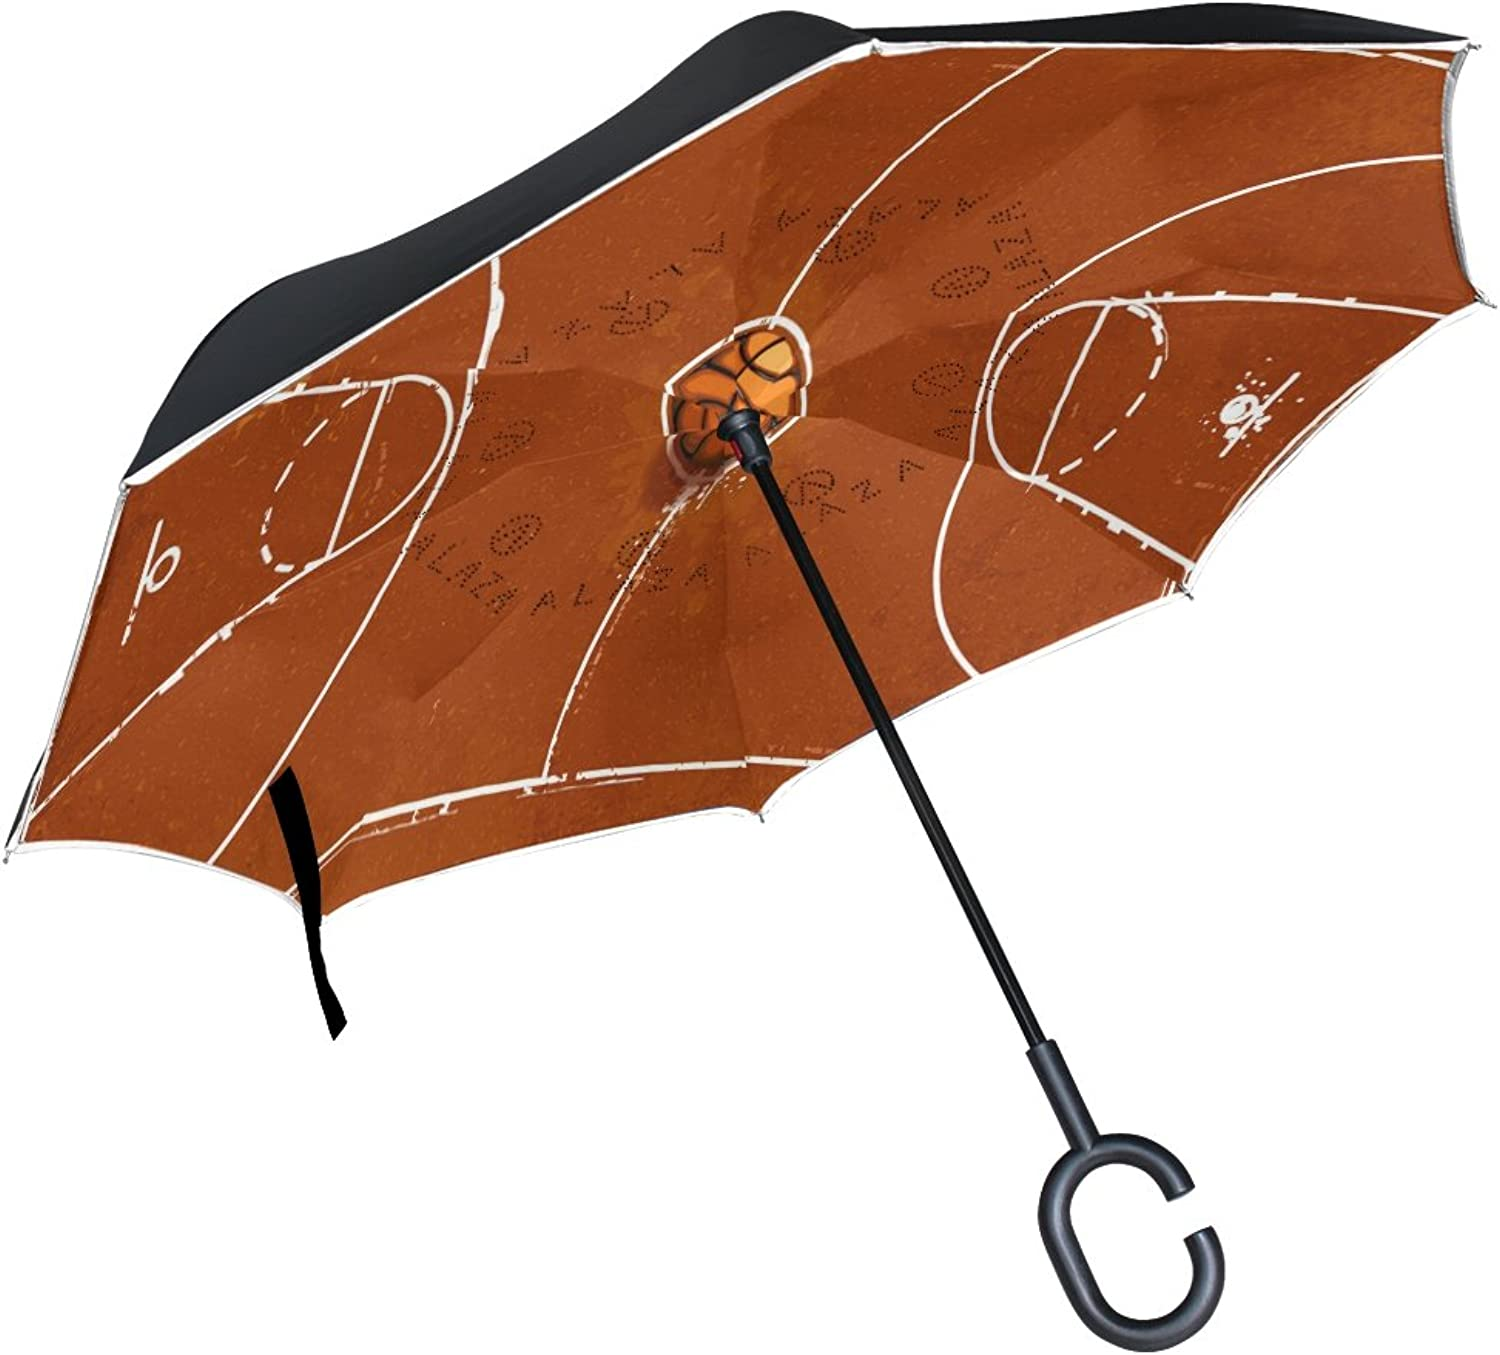 MASSIKOA Grunge Basketball Playground Ingreened Double Layer Straight Umbrellas Inside-Out Reversible Umbrella with C-Shaped Handle for Rain Sun Car Use